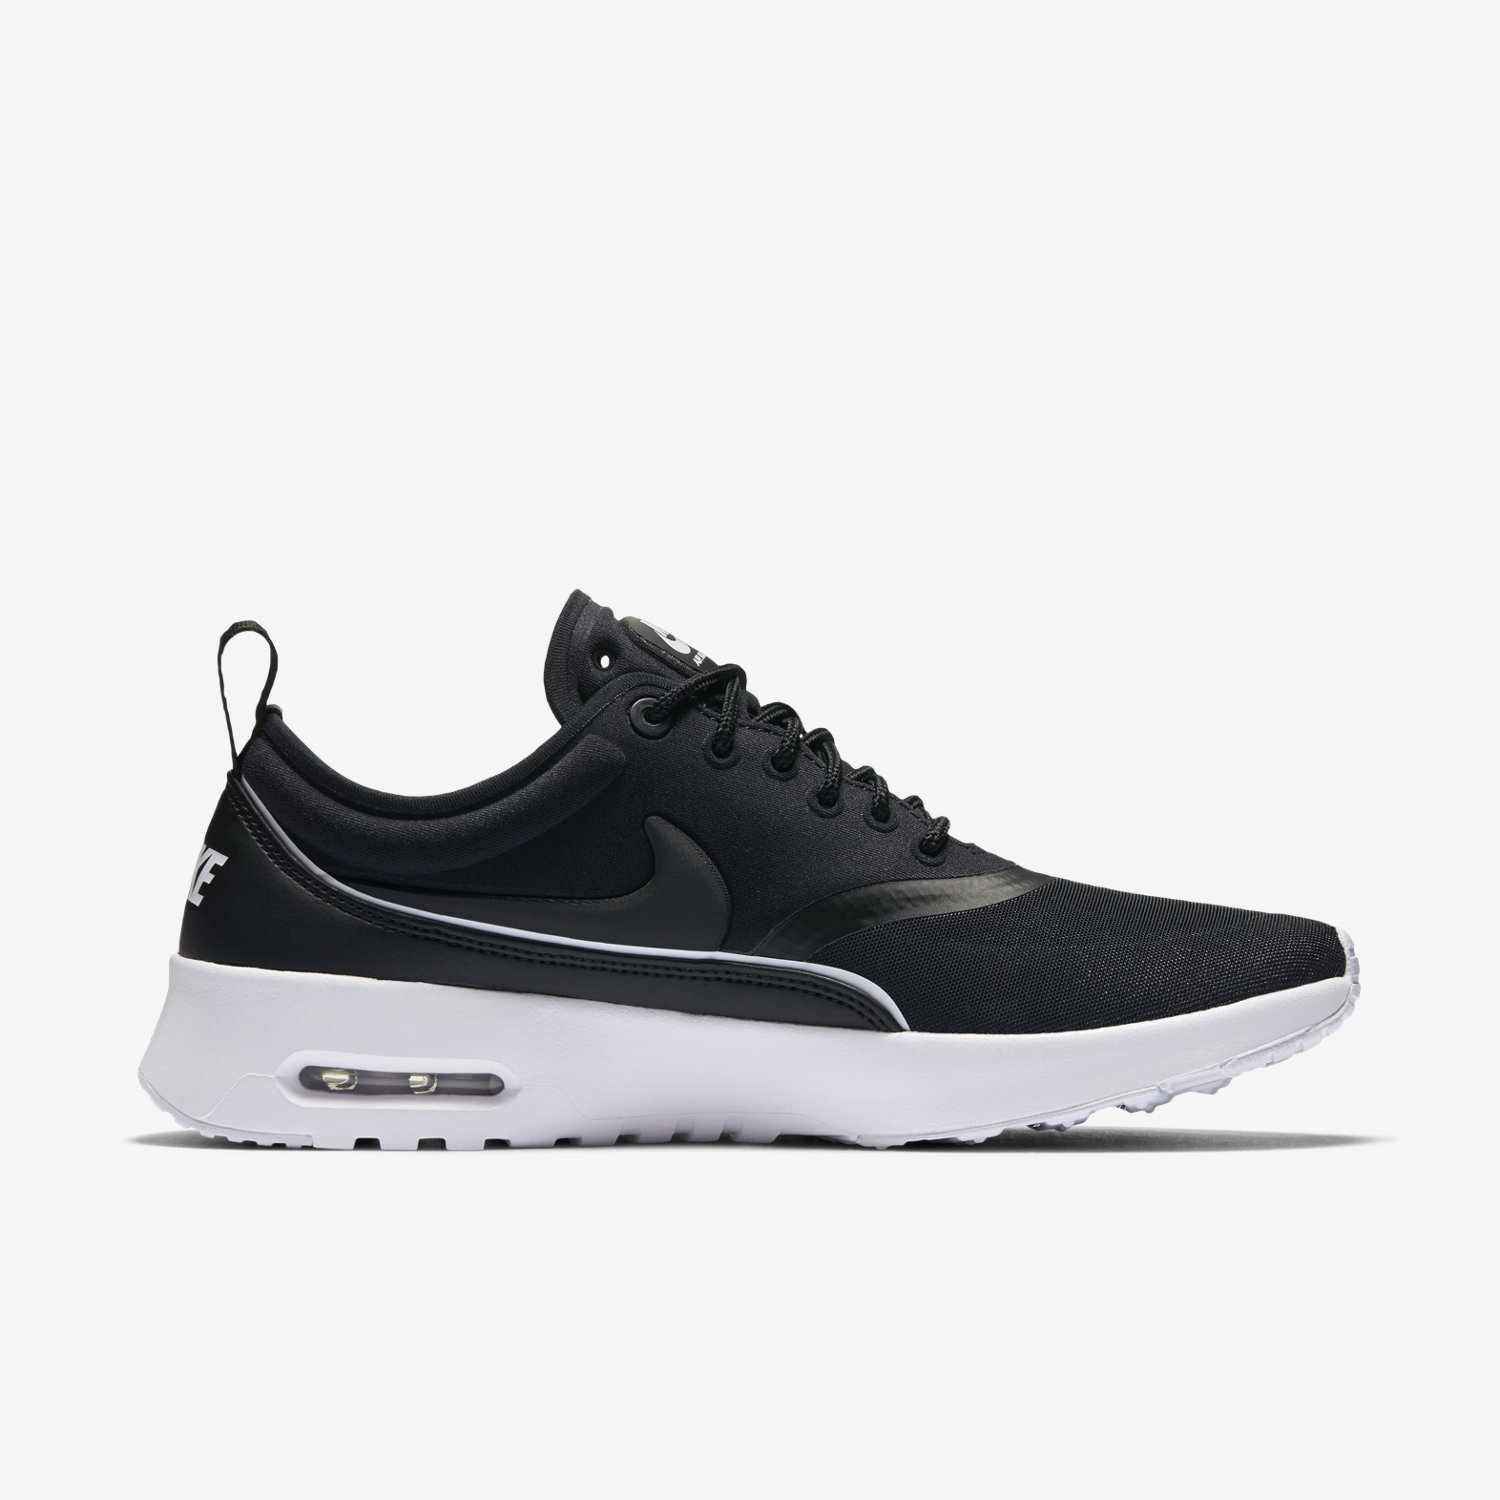 Nike Air Max Thea Print Black & Other Stories